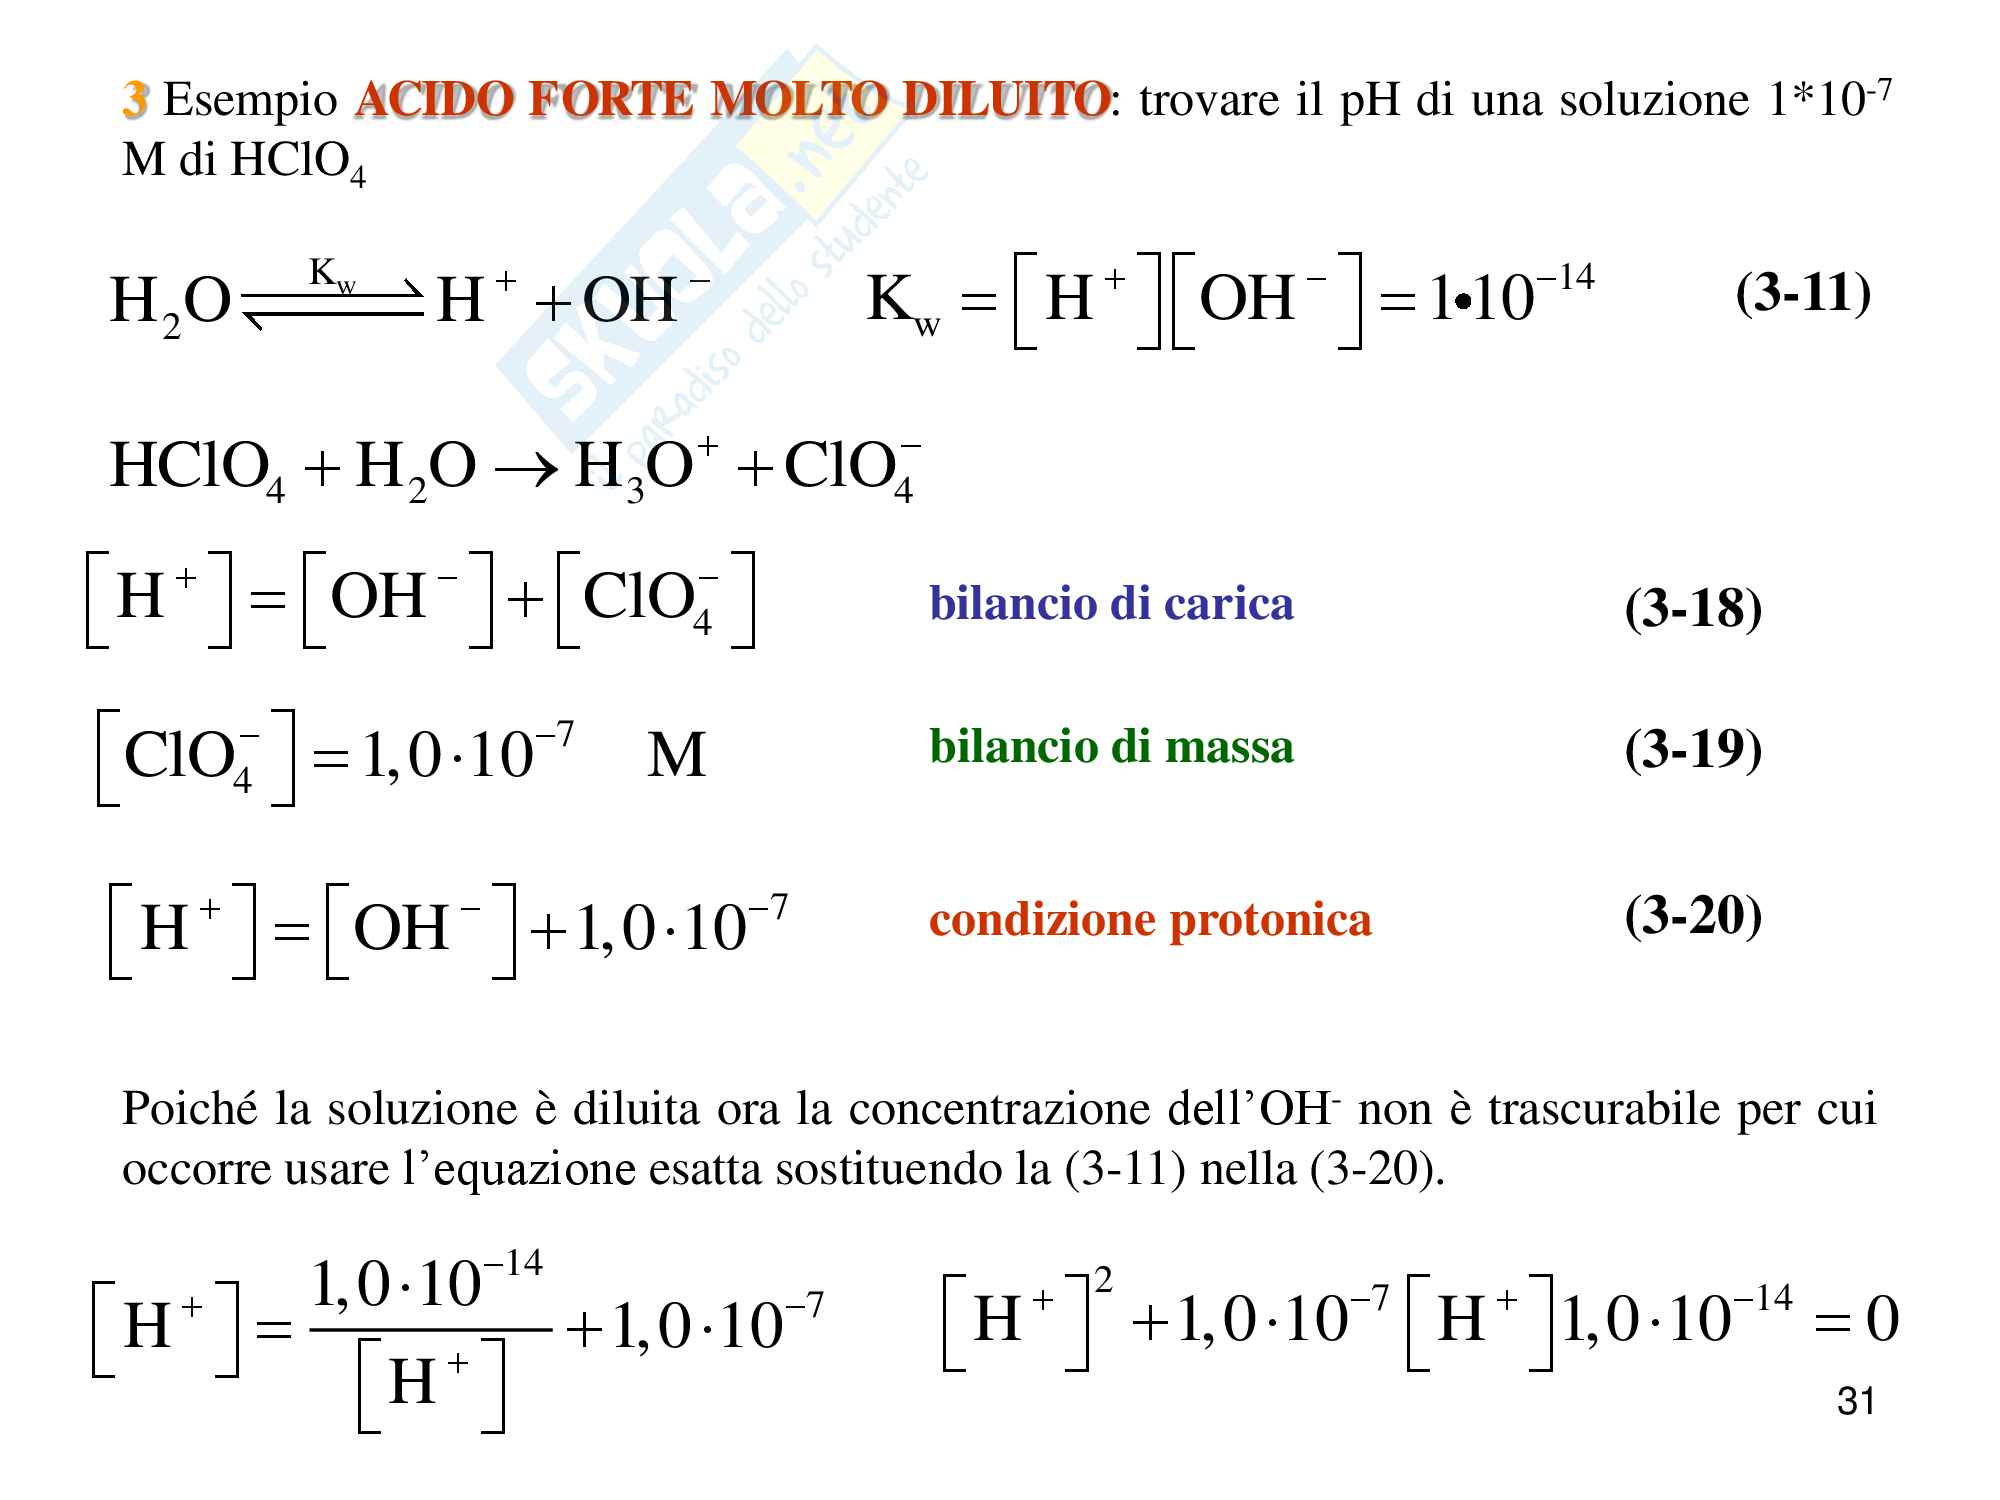 Chimica analitica, equilibrio acido base Pag. 31